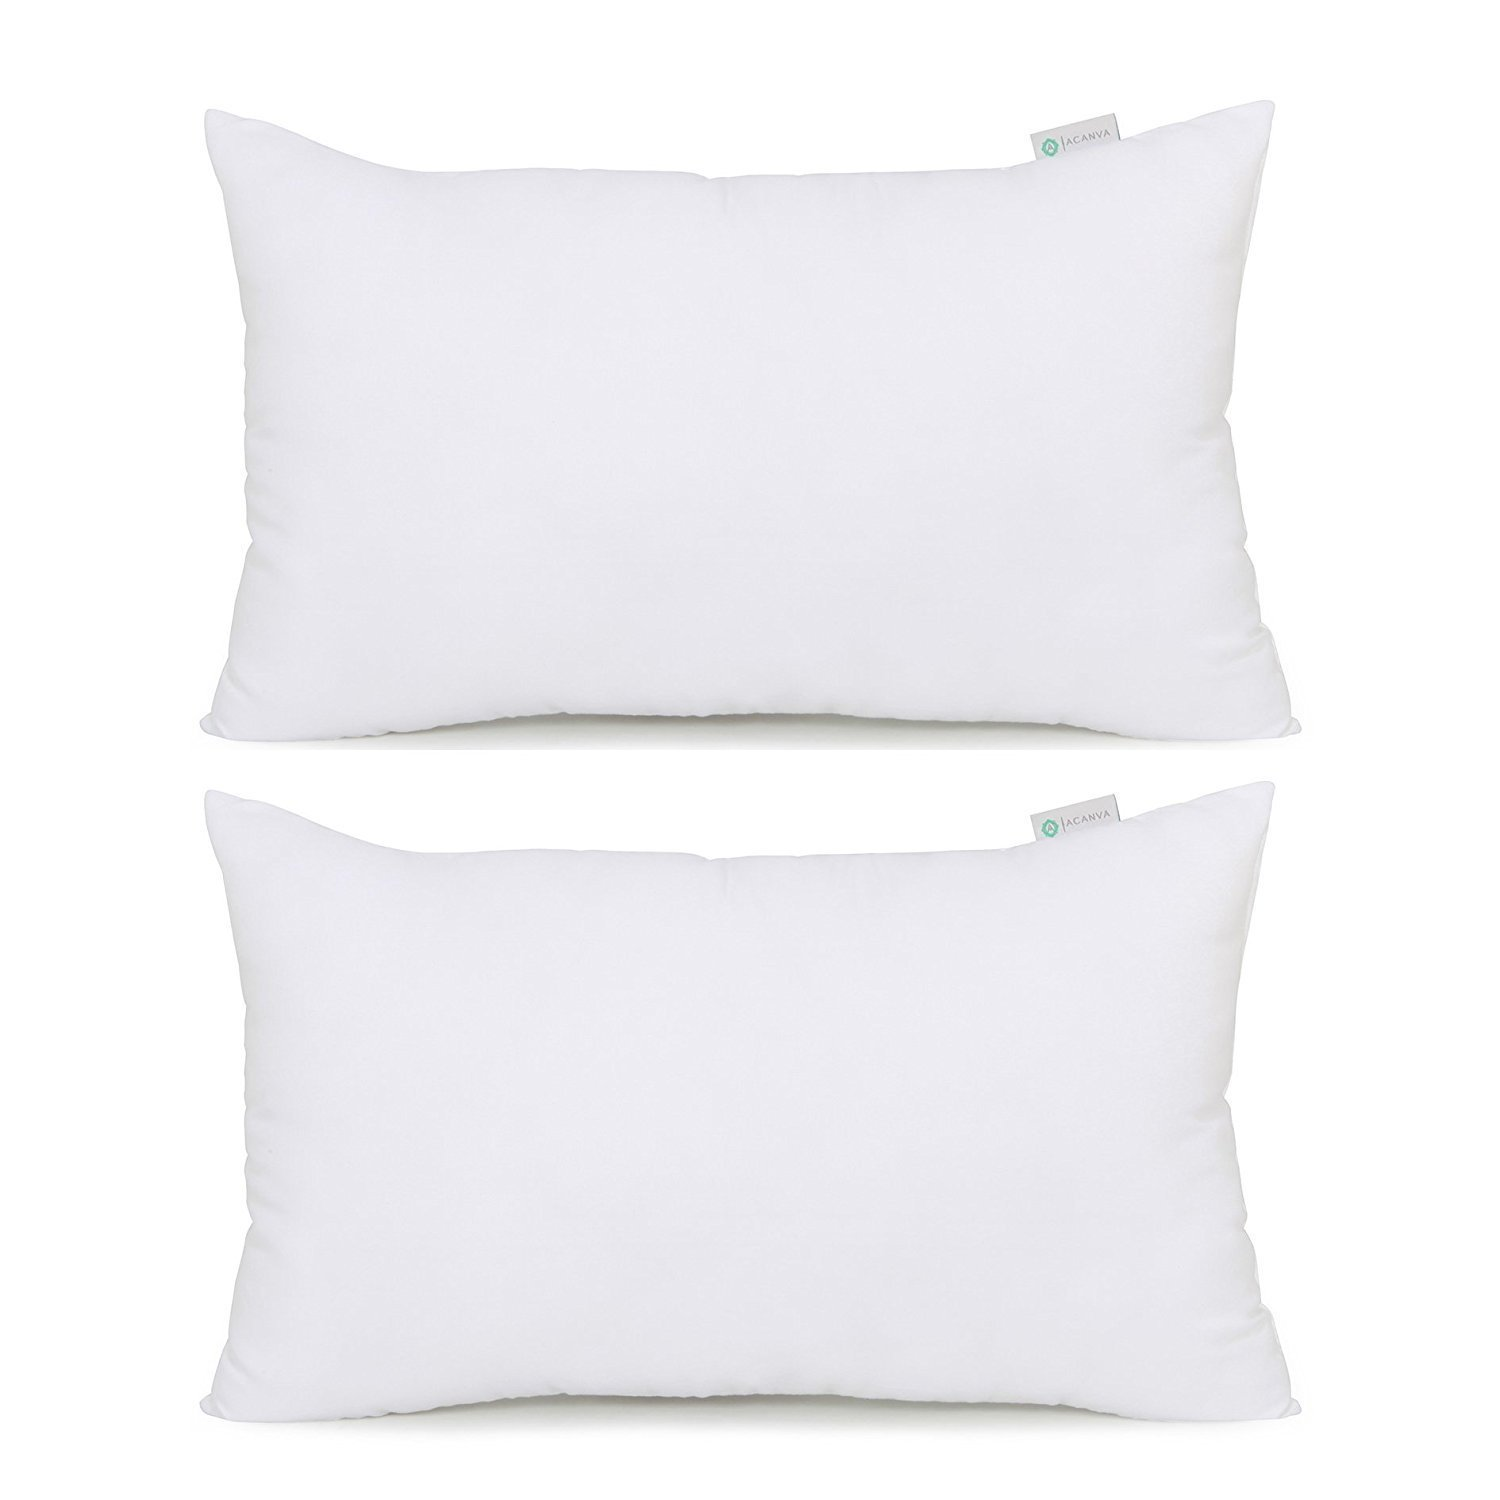 "Image of Acanva Hypoallergenic Pillow Insert Form Cushion Sham, Oblong Rectangle, 12"" L x 20"" W, Set of 2"